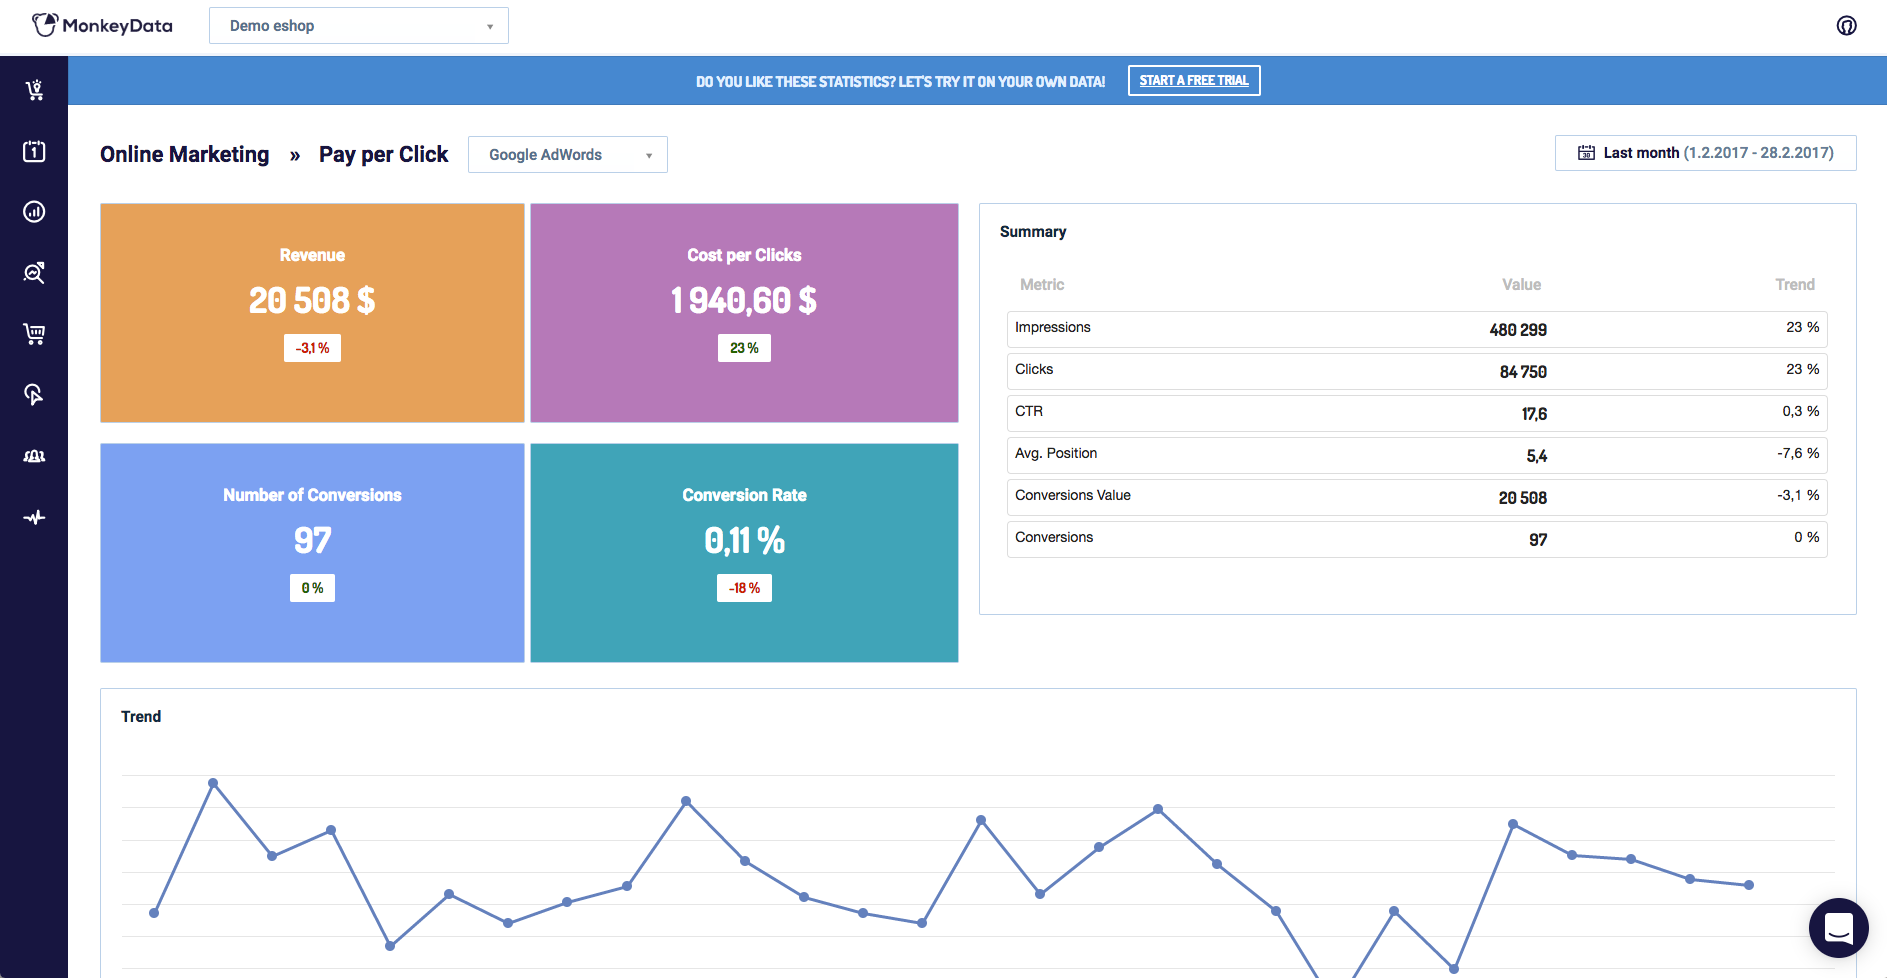 Track online marketing results for revenue and conversions